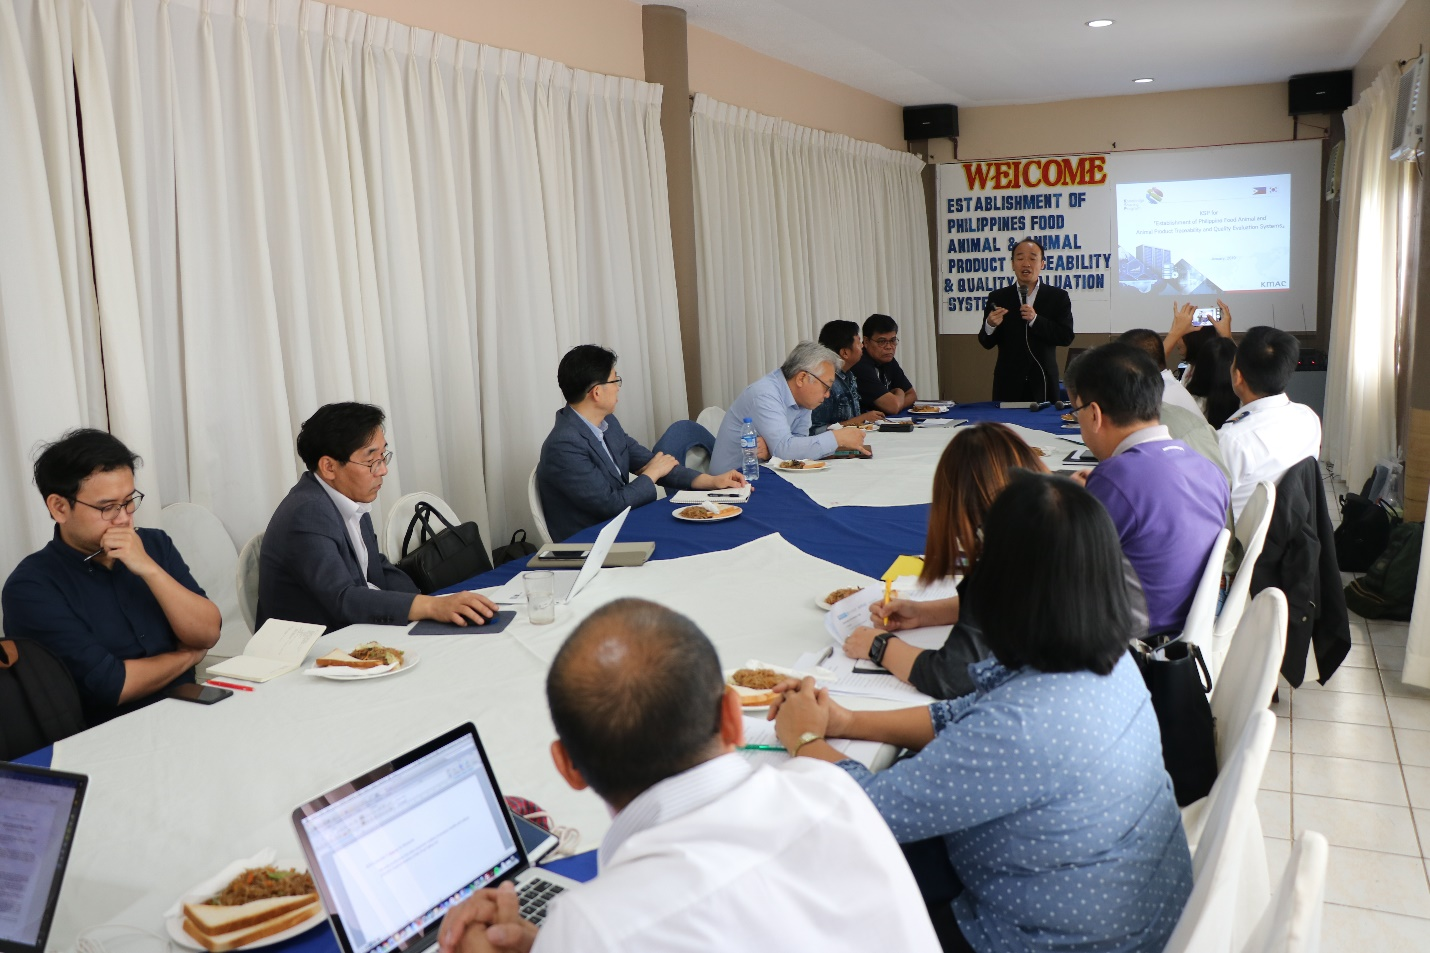 Korean consultants, livestock stakeholders tackle traceability system for food animal, animal products